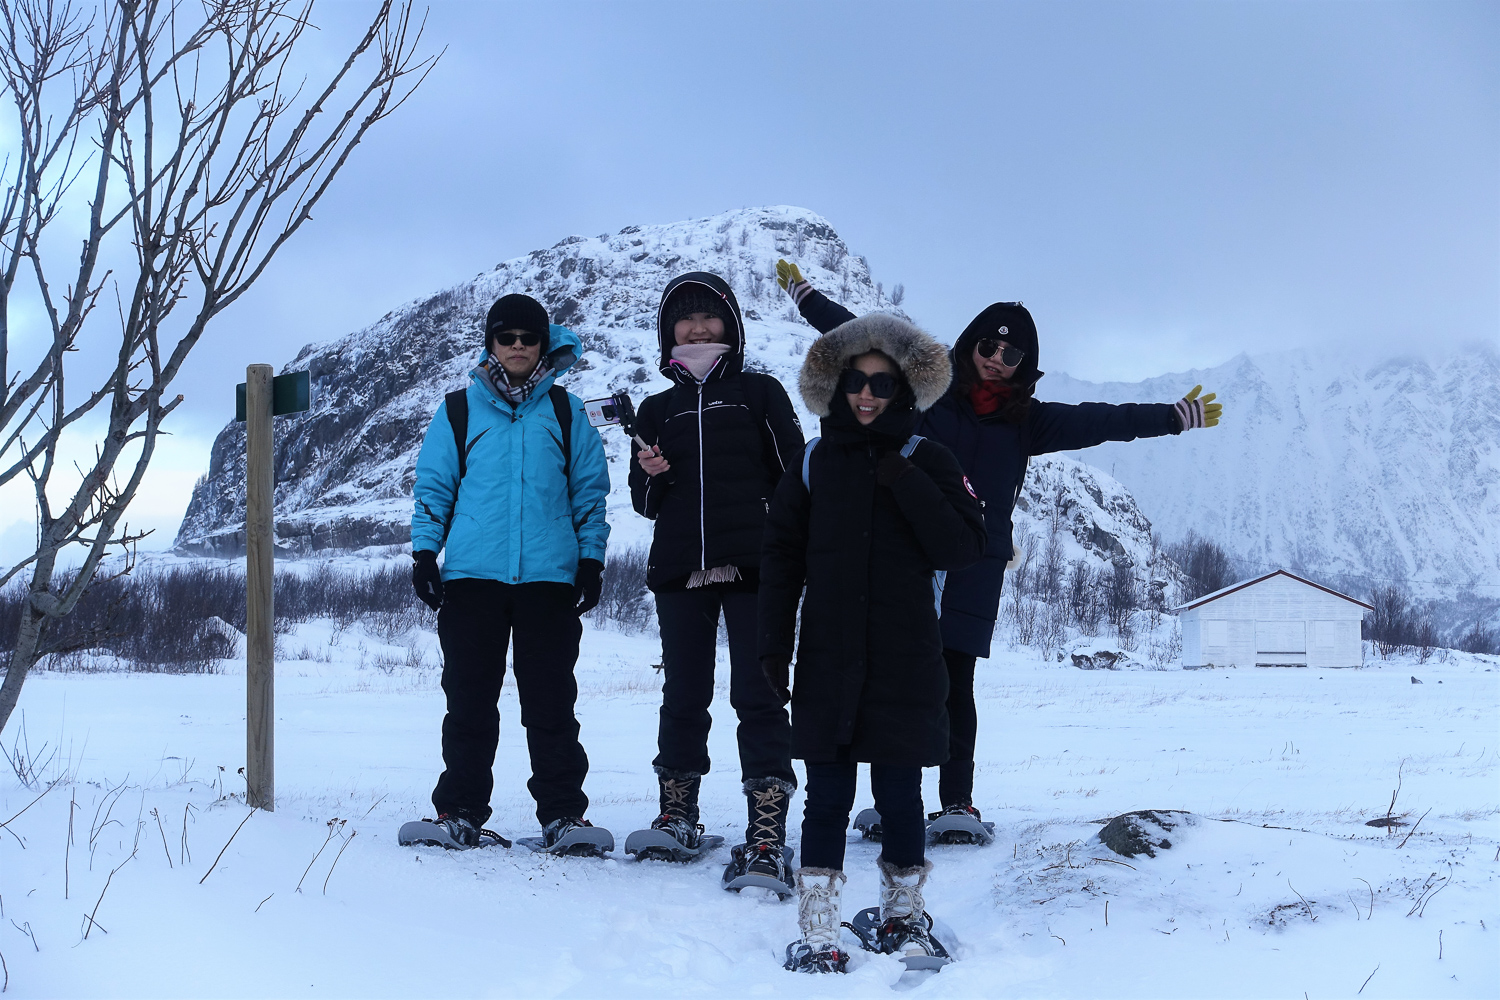 Snow shoeing with the guests